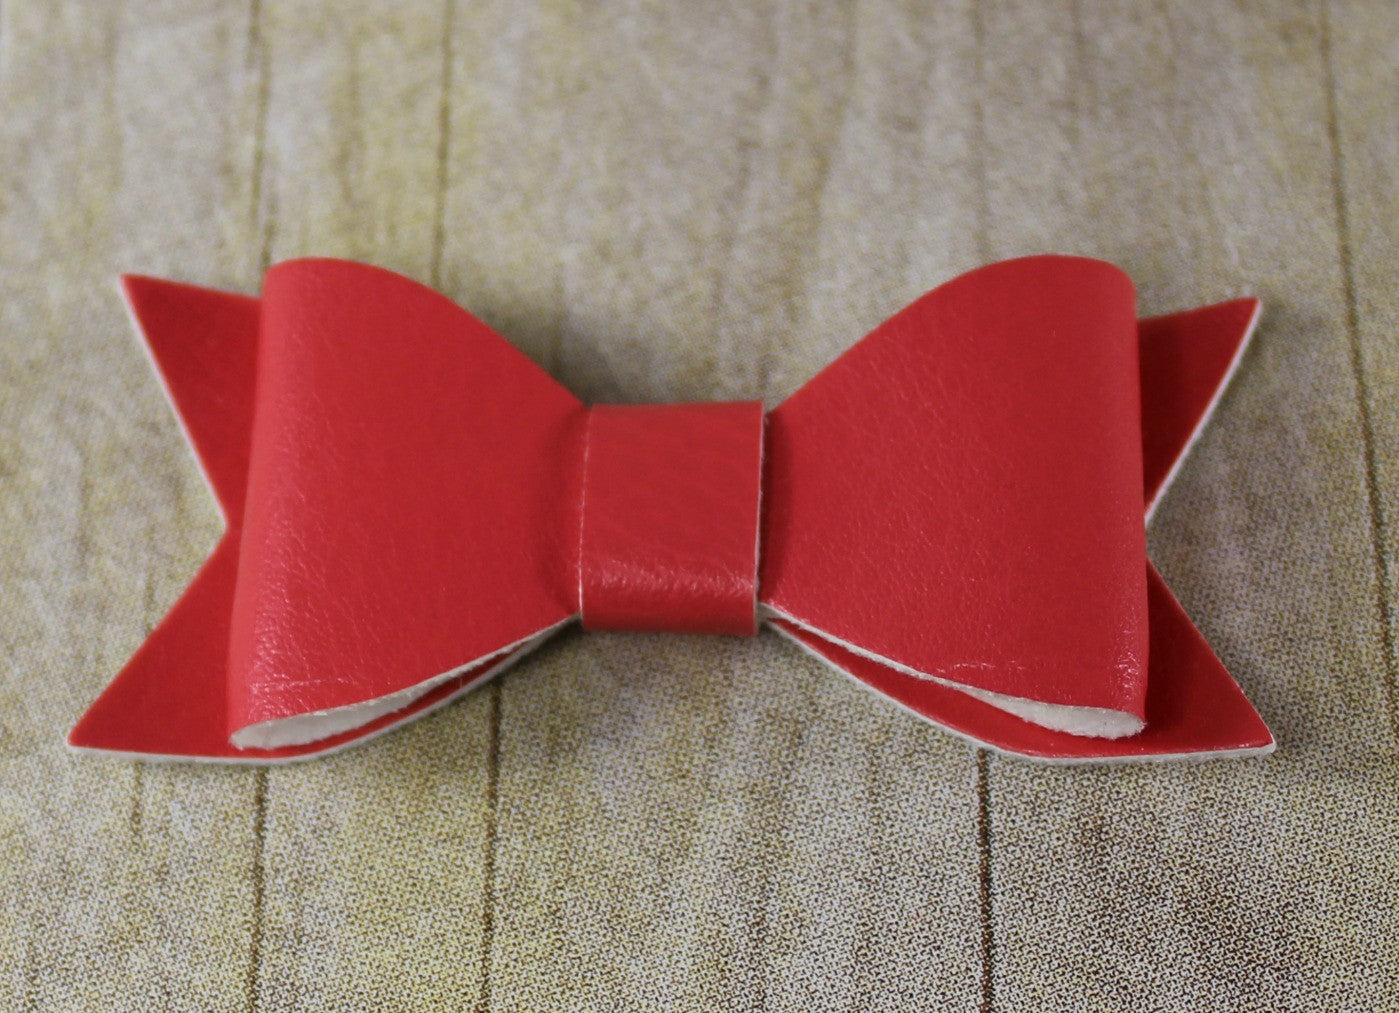 Faux Leather Bow - Coral - shabbyflowers.com